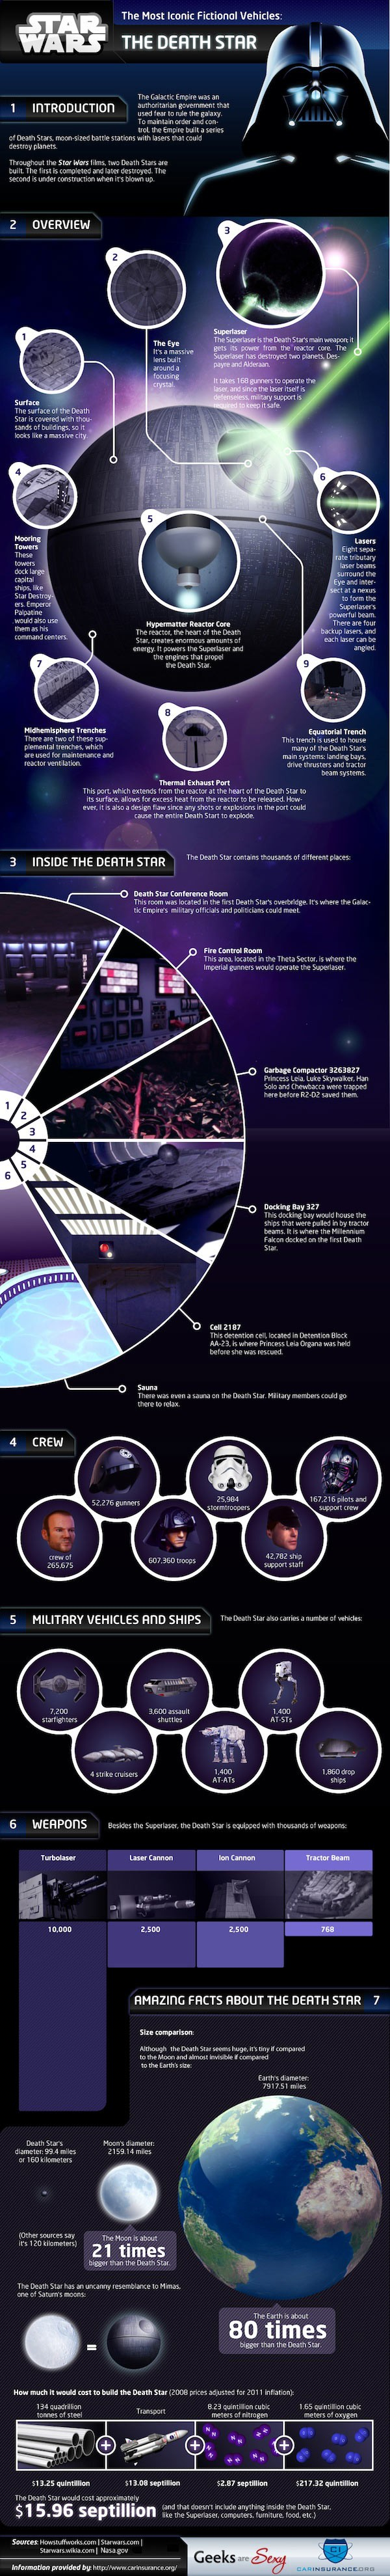 Inside the Death Star